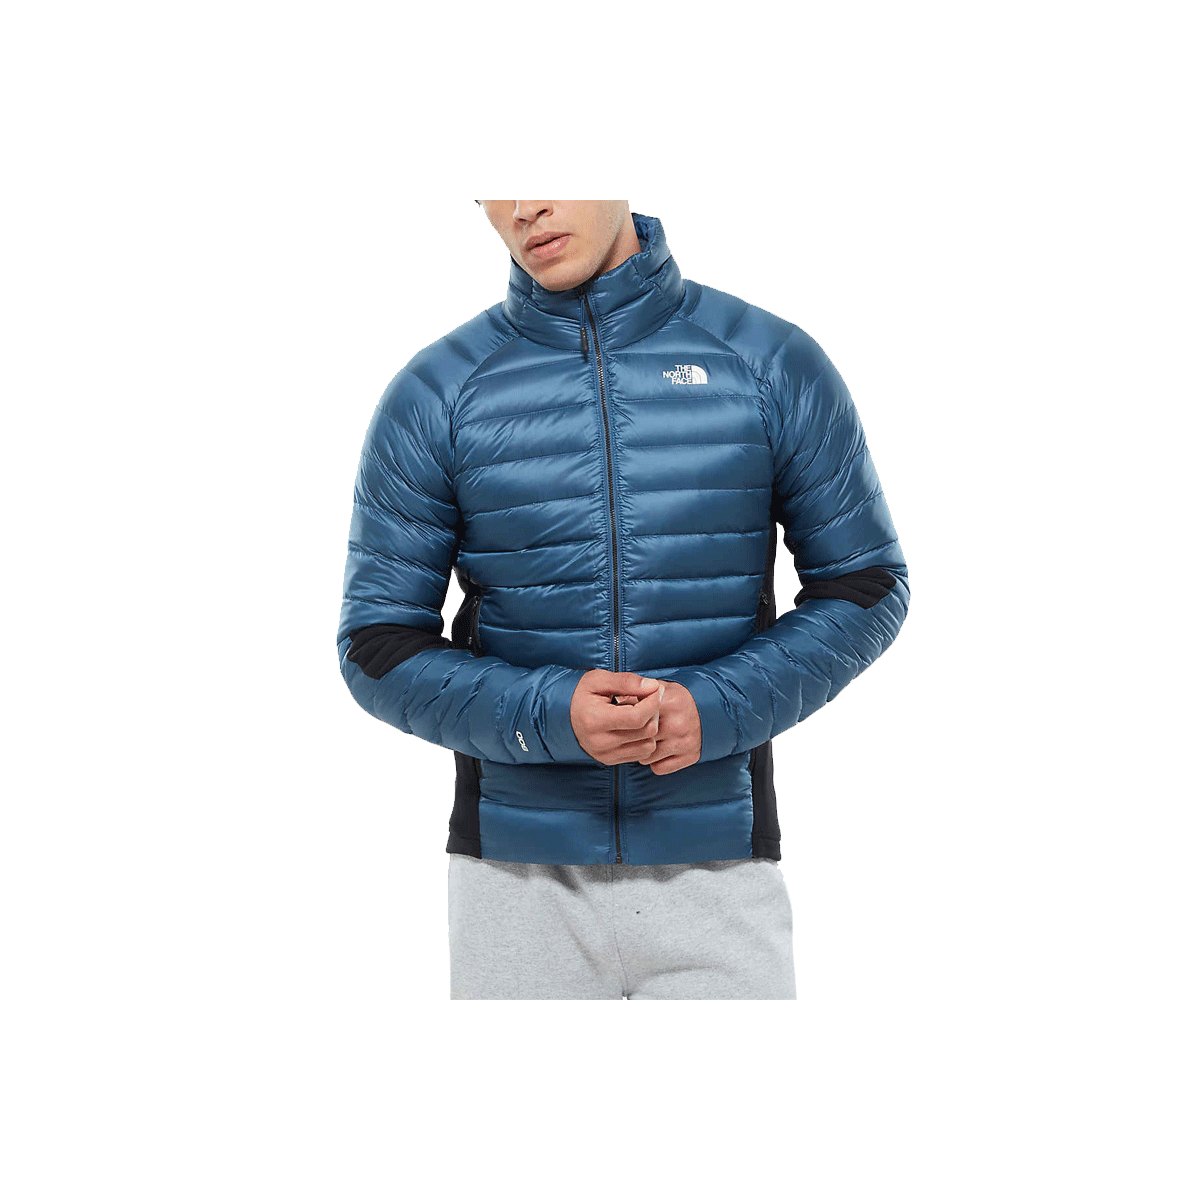 d89dc3fb93 Doudoune Homme Manches Longues The North Face TNF Crimptastic Bleu